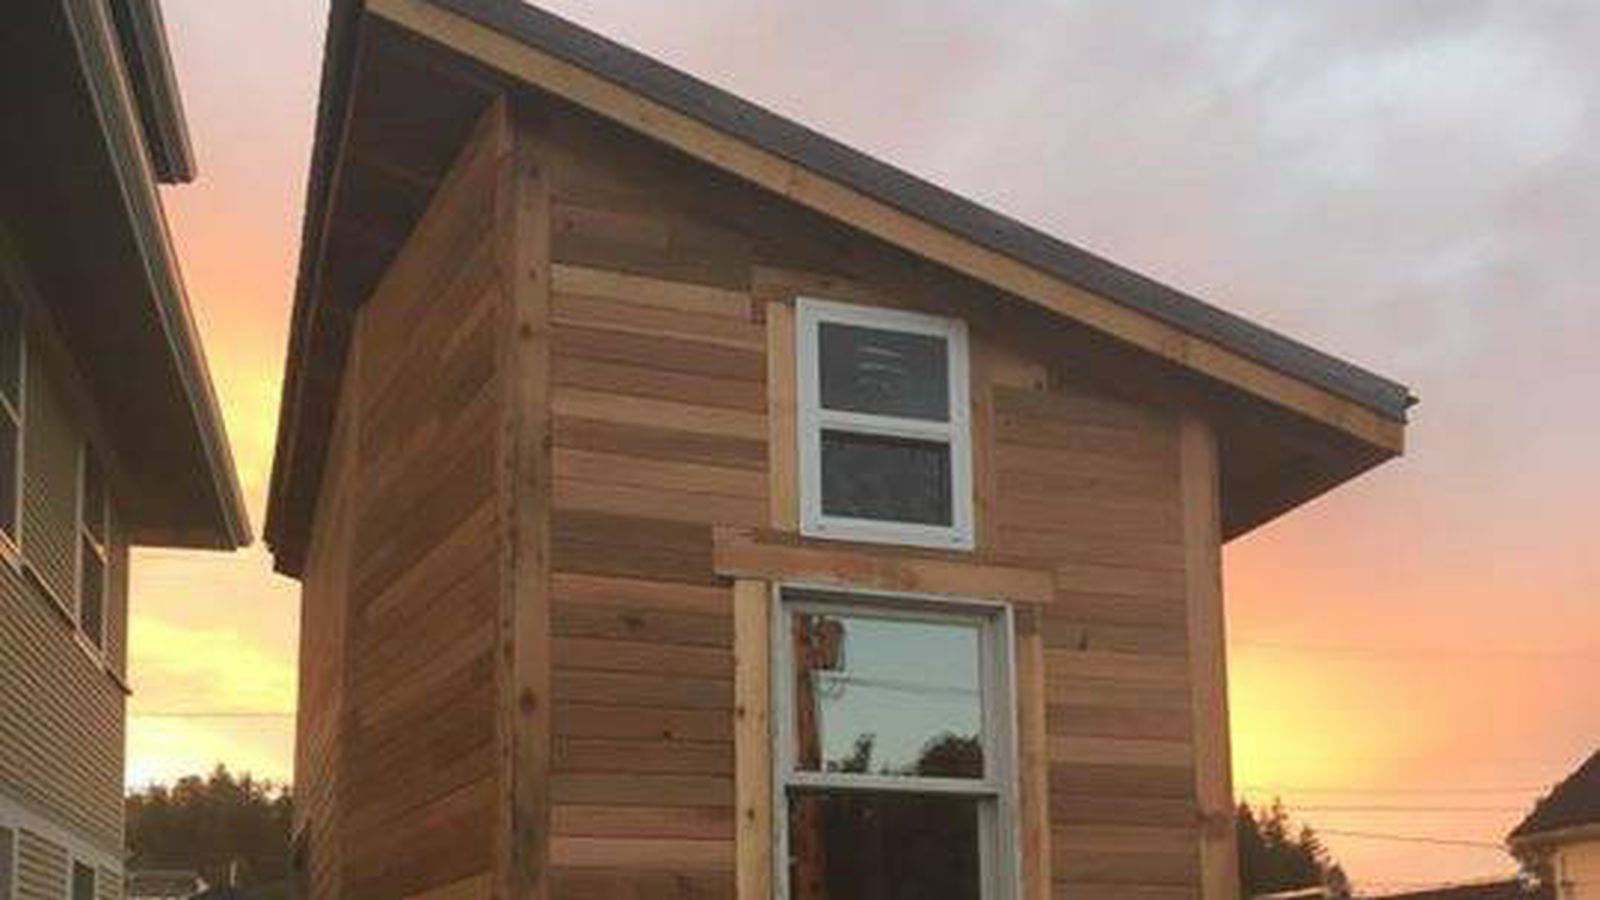 Craigslist Com Philadelphia >> Wrap this $20K Burlington tiny house in a big red bow - Curbed Seattle